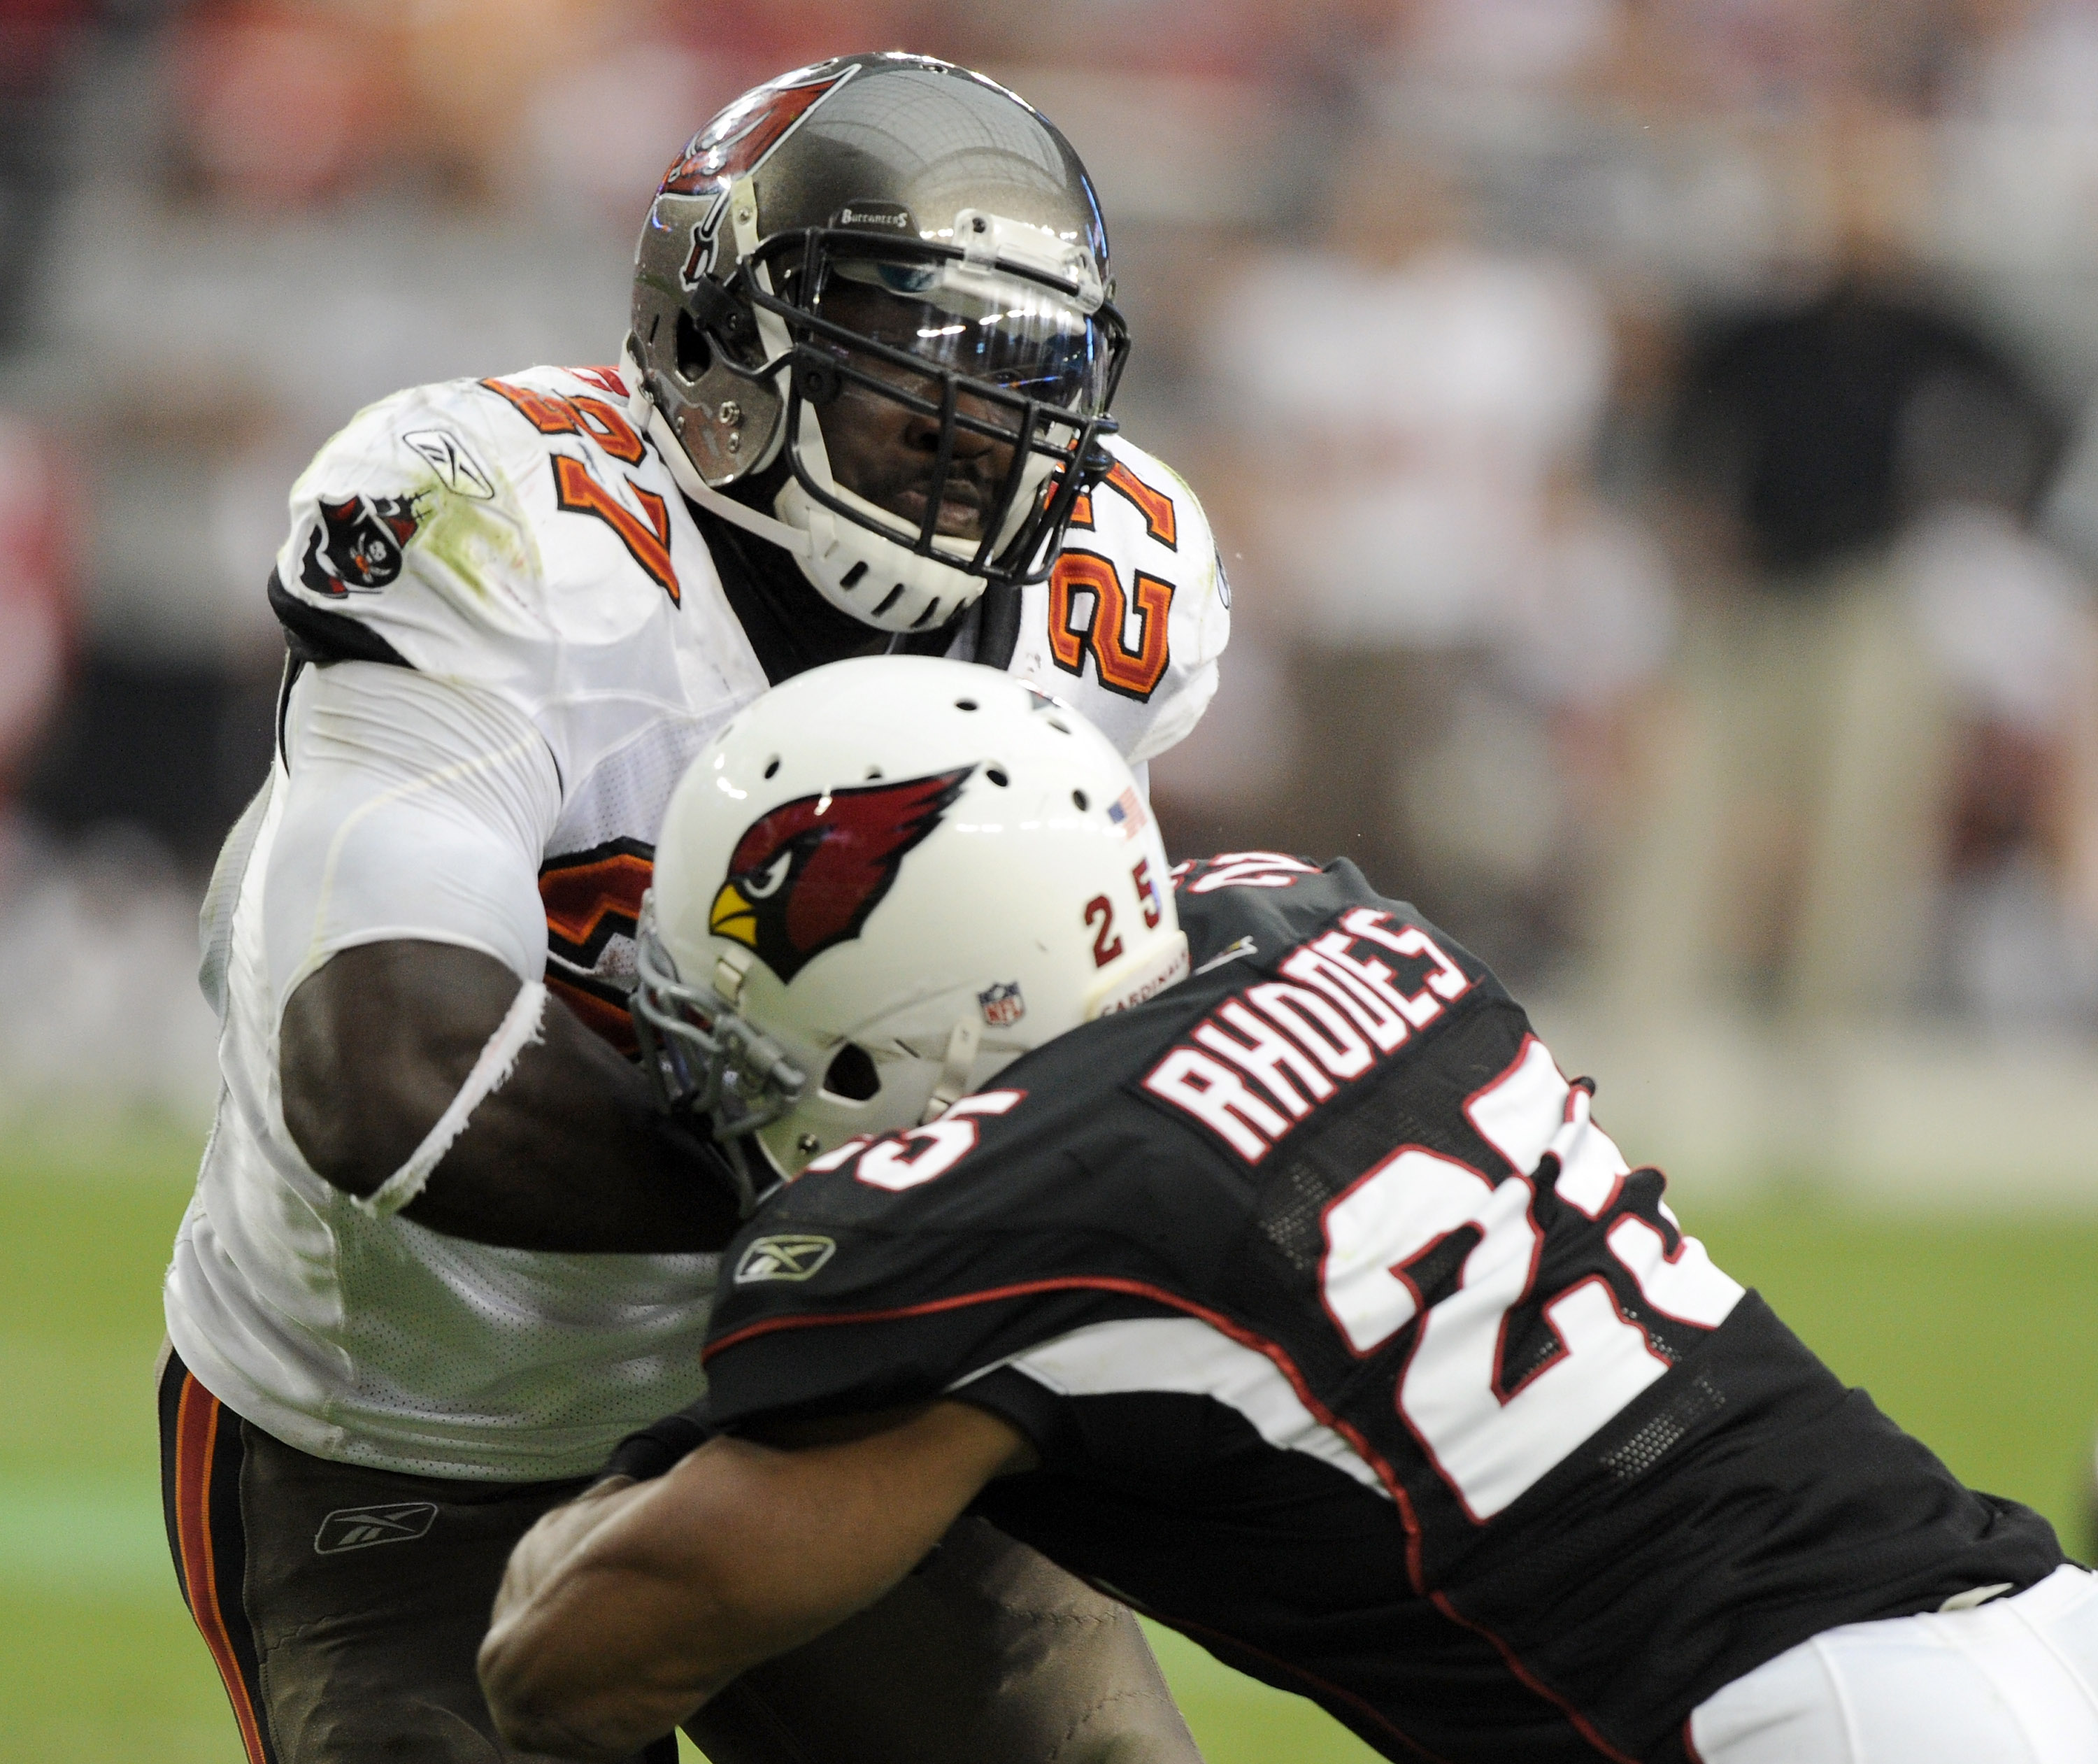 GLENDALE, AZ - OCTOBER 31:  LeGarrette Blount #27 of the Tampa Bay Buccaneers bounces off the tackle of Kerry Rhodes #25 of the Arizona Cardinals for a 31-14 lead during the third quarter at University of Phoenix Stadium on October 31, 2010 in Glendale, A